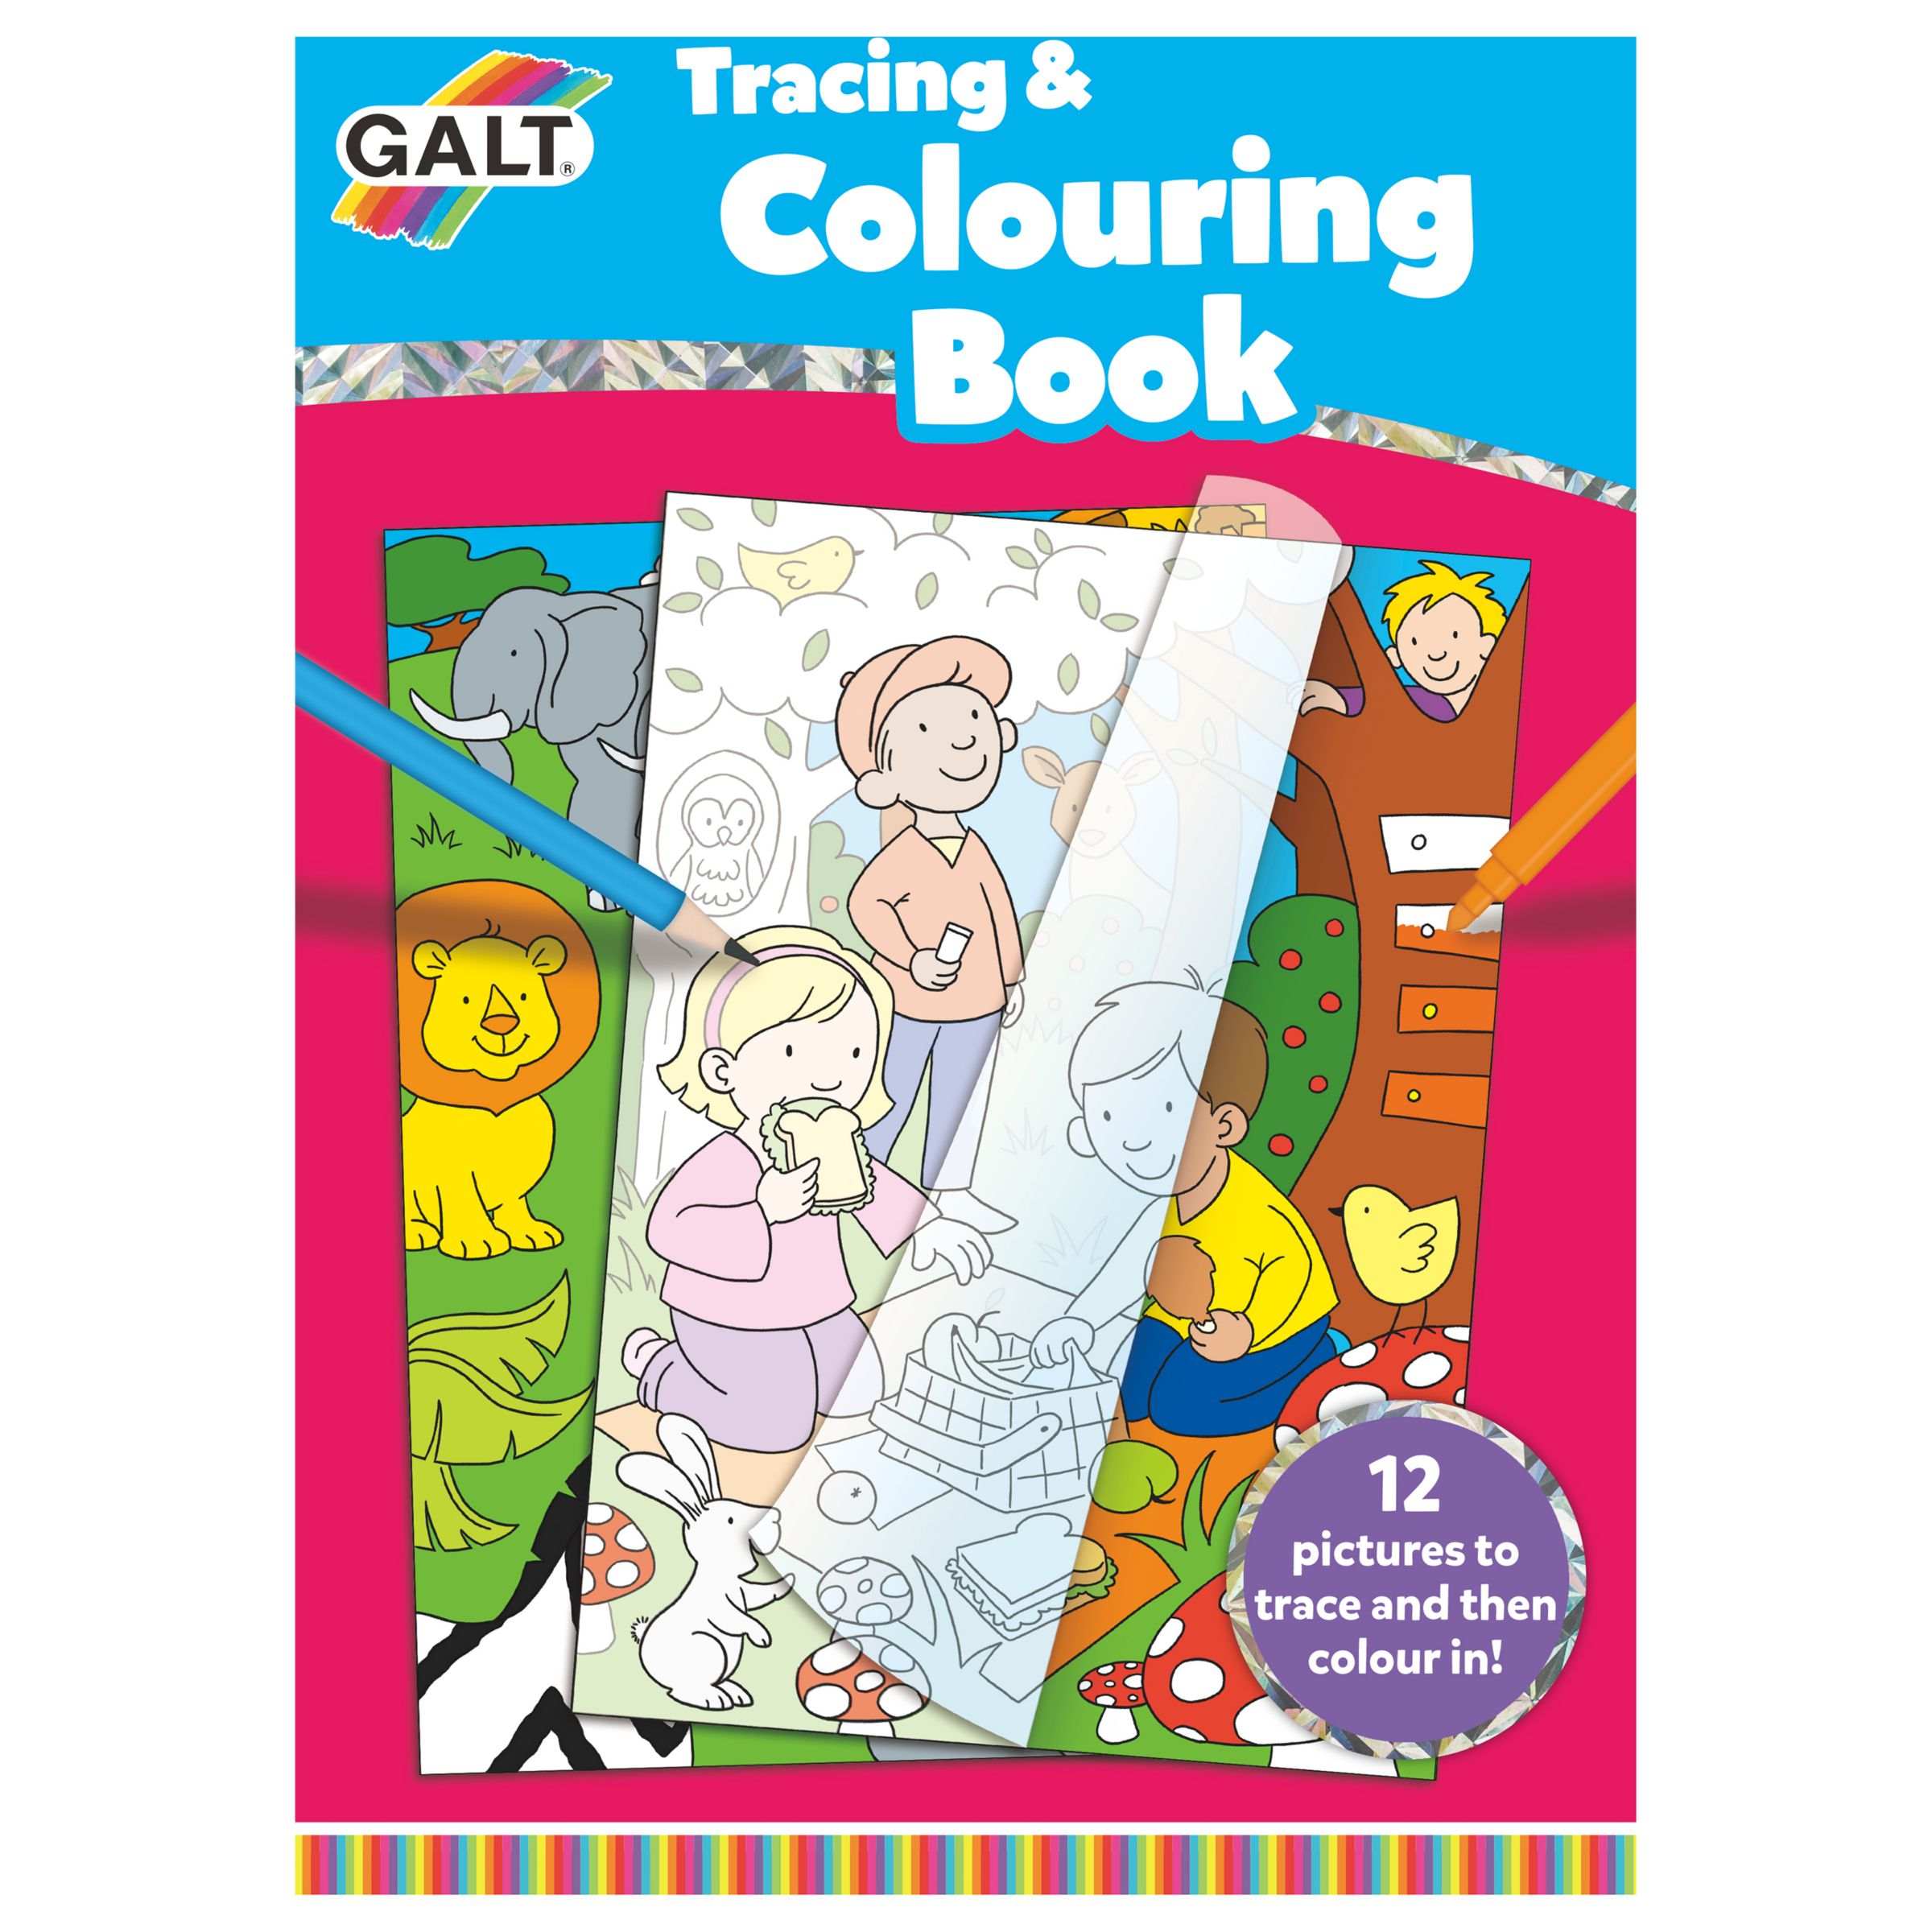 Galt Galt Tracing & Colouring Book